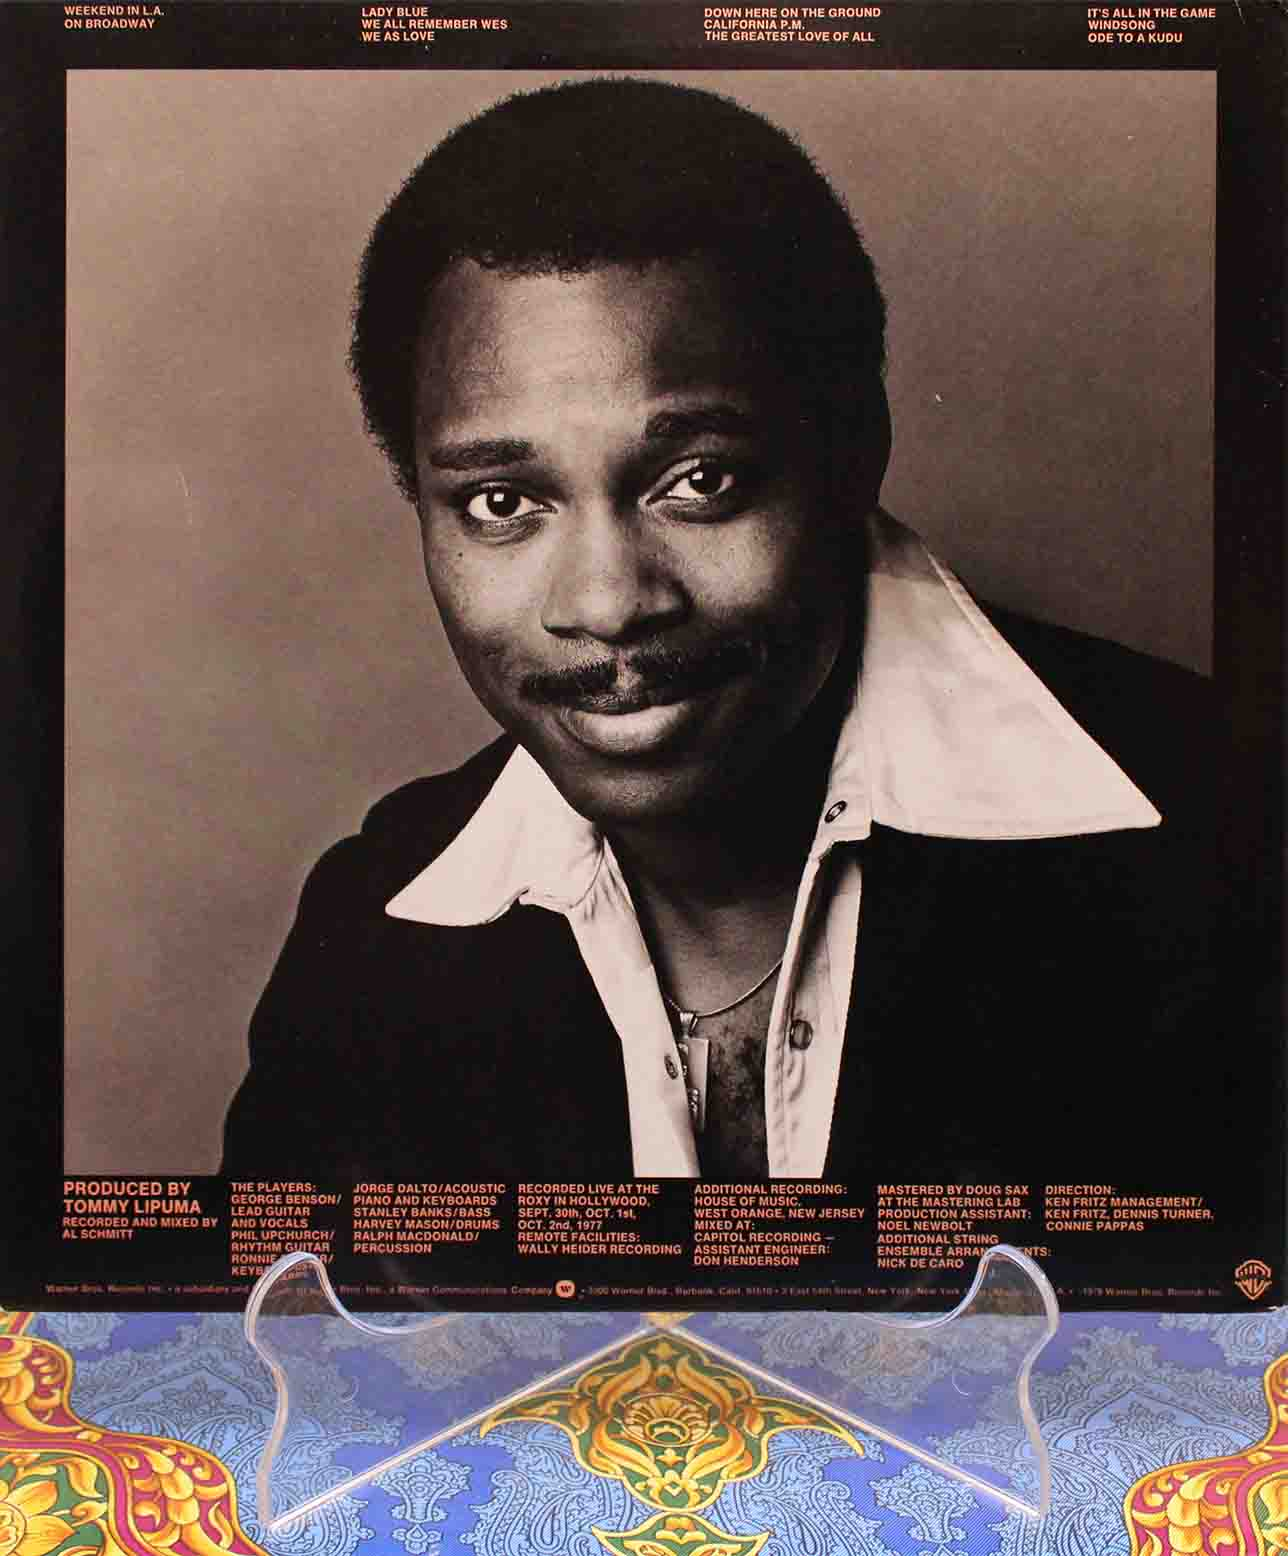 George Benson ‎– Weekend In LA 02